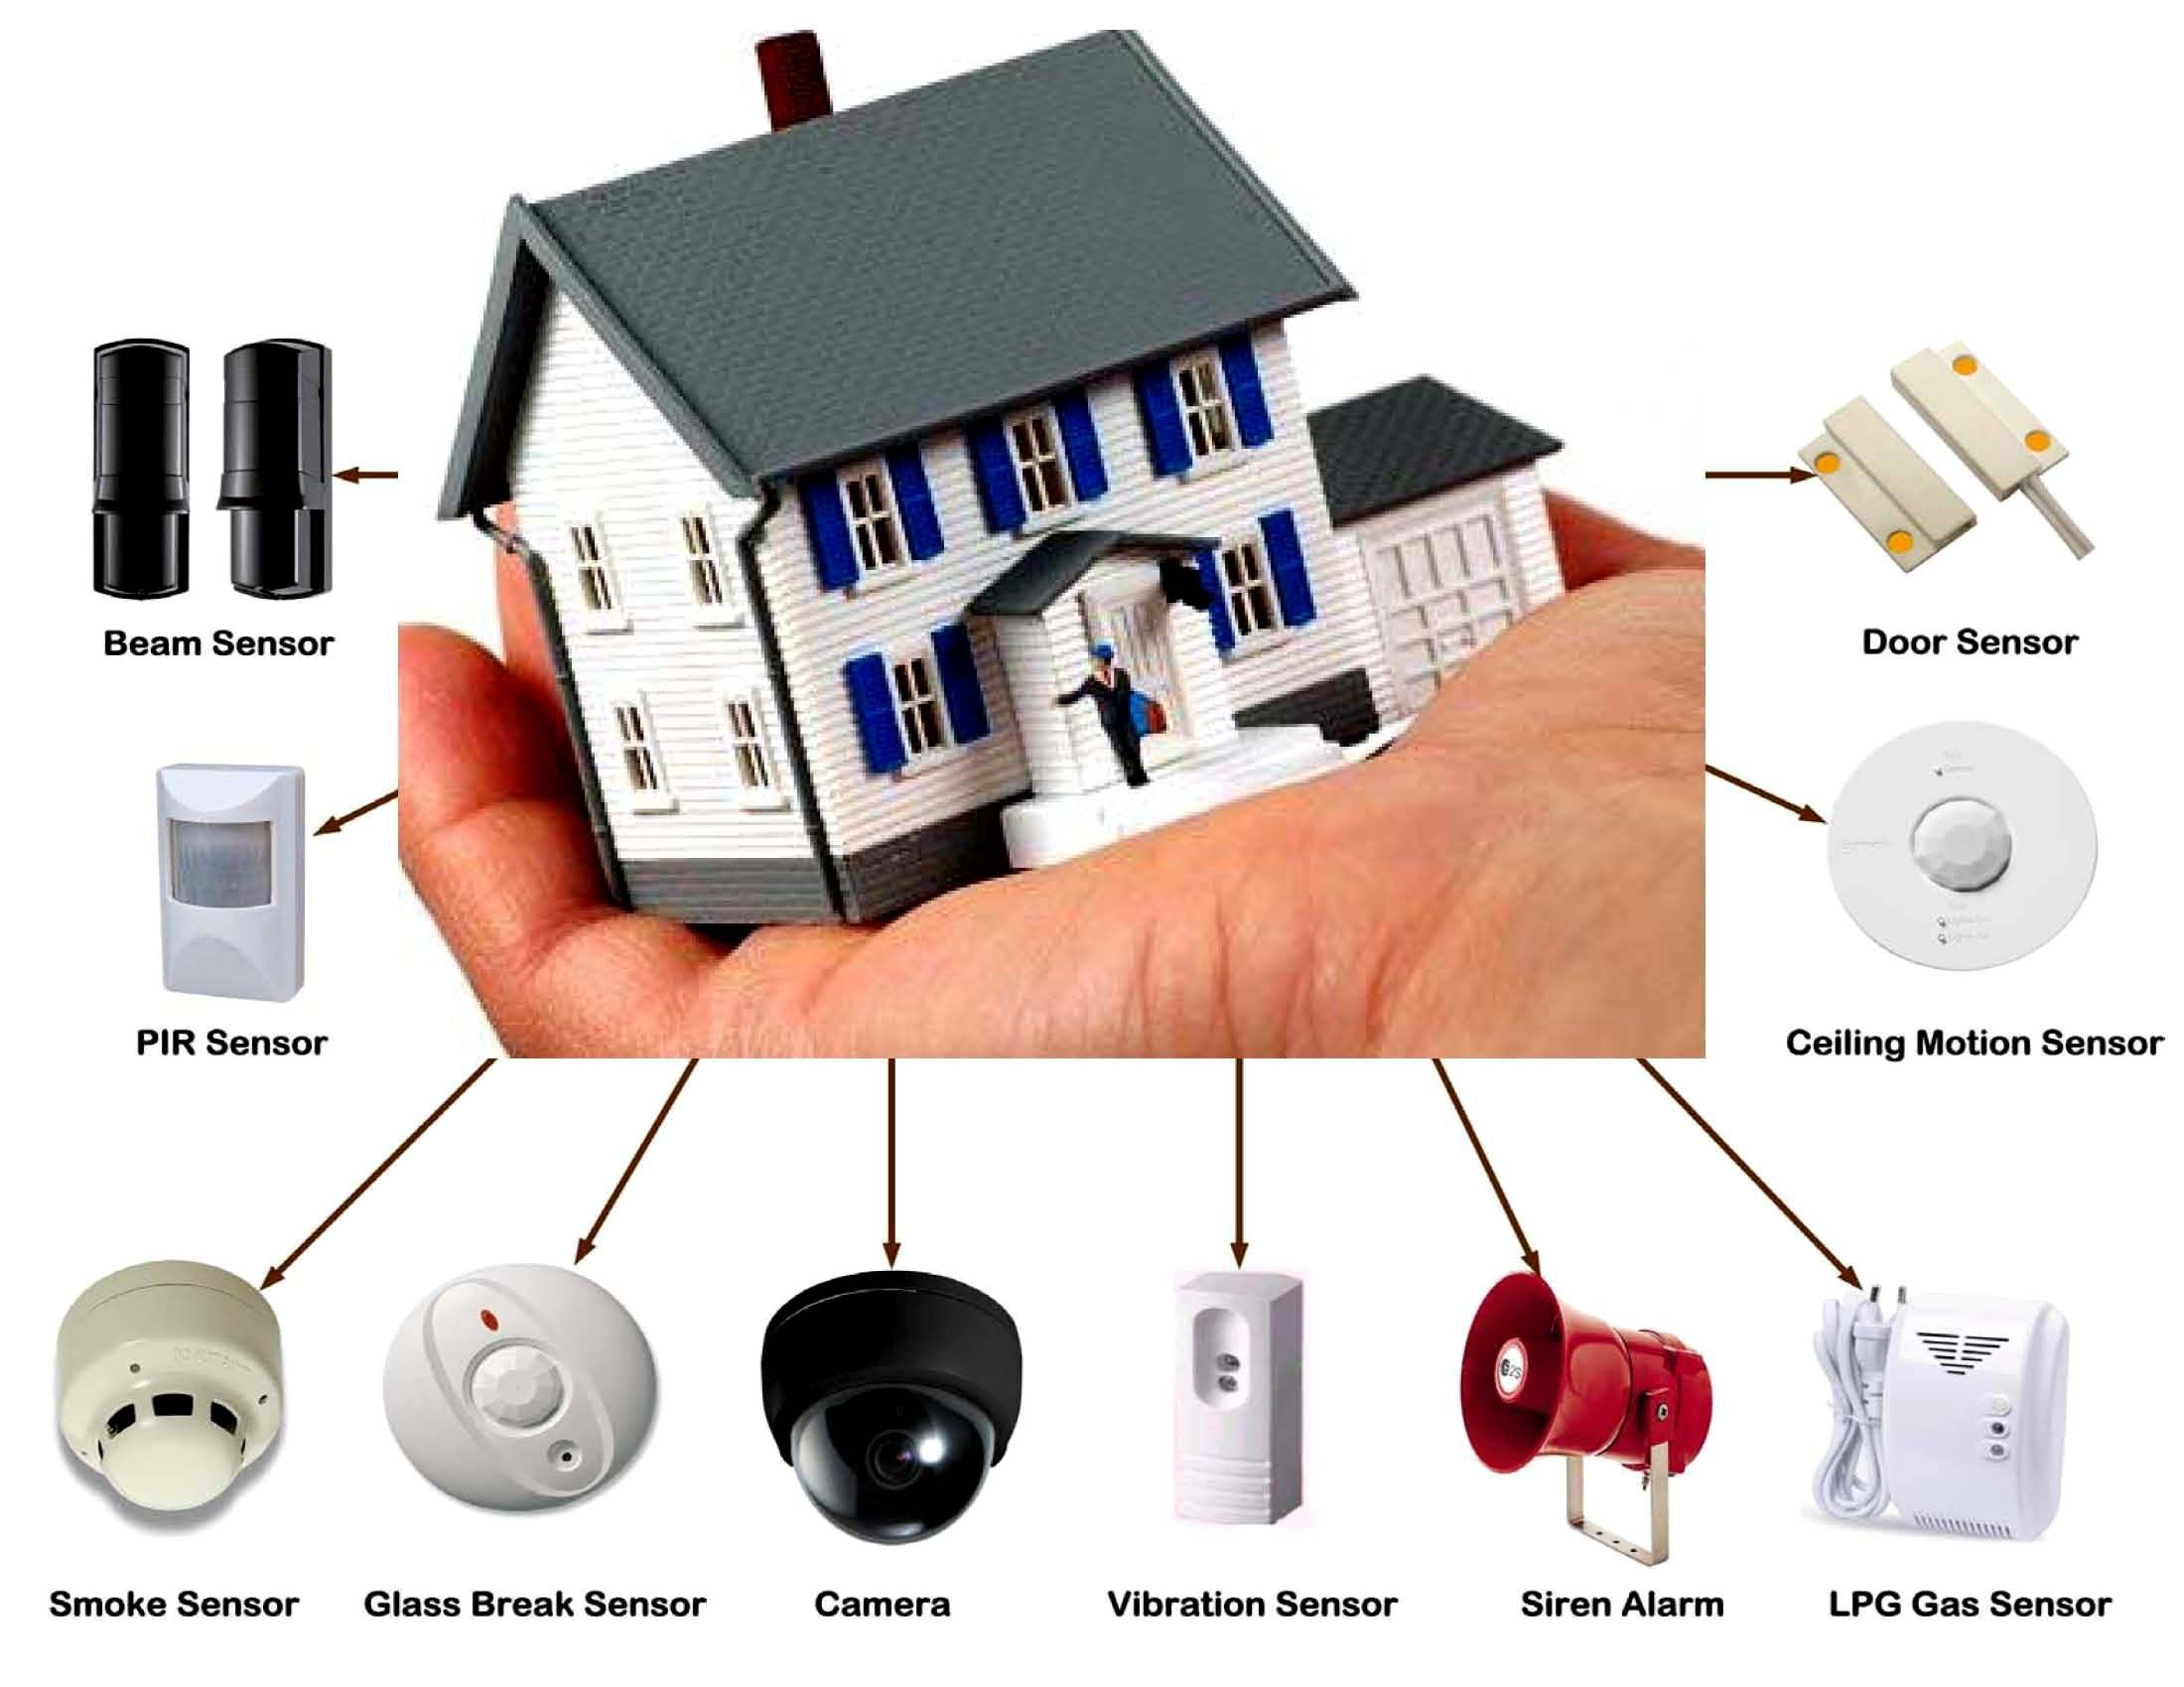 Our experts review and compare the top DIY home security systems. This is a  must